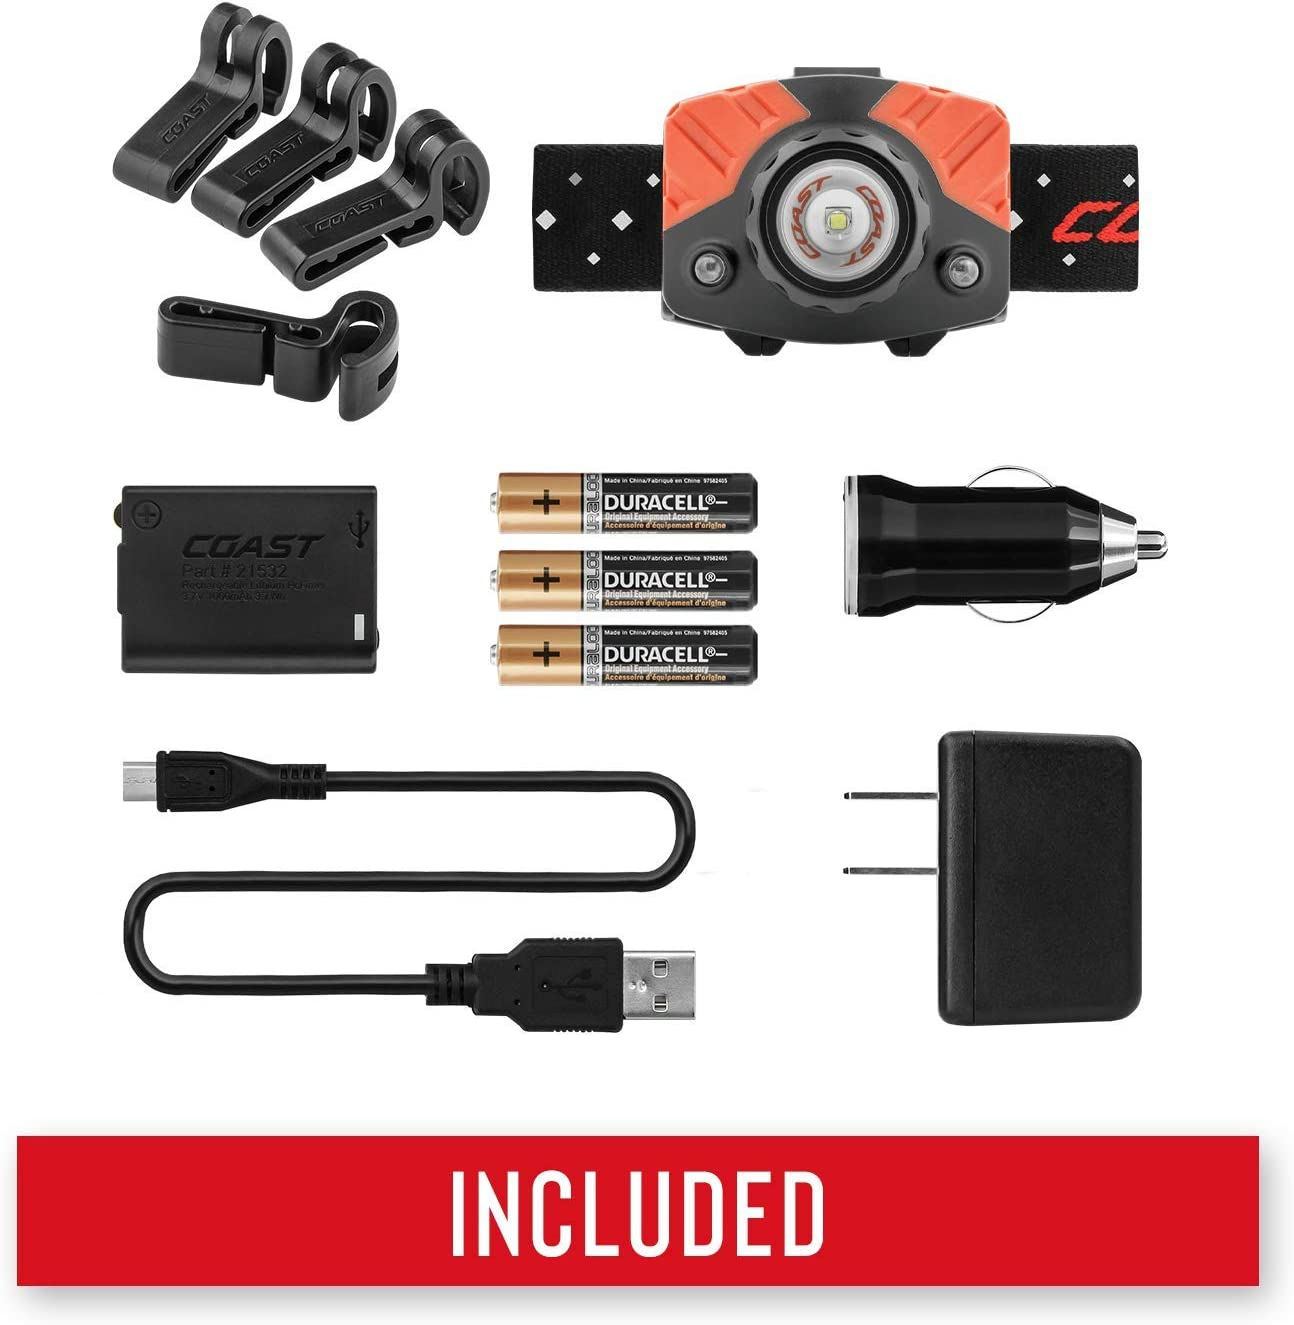 Rechargeable LED Headlamp FL60R 450 Lumen Accessories Included Dual Power